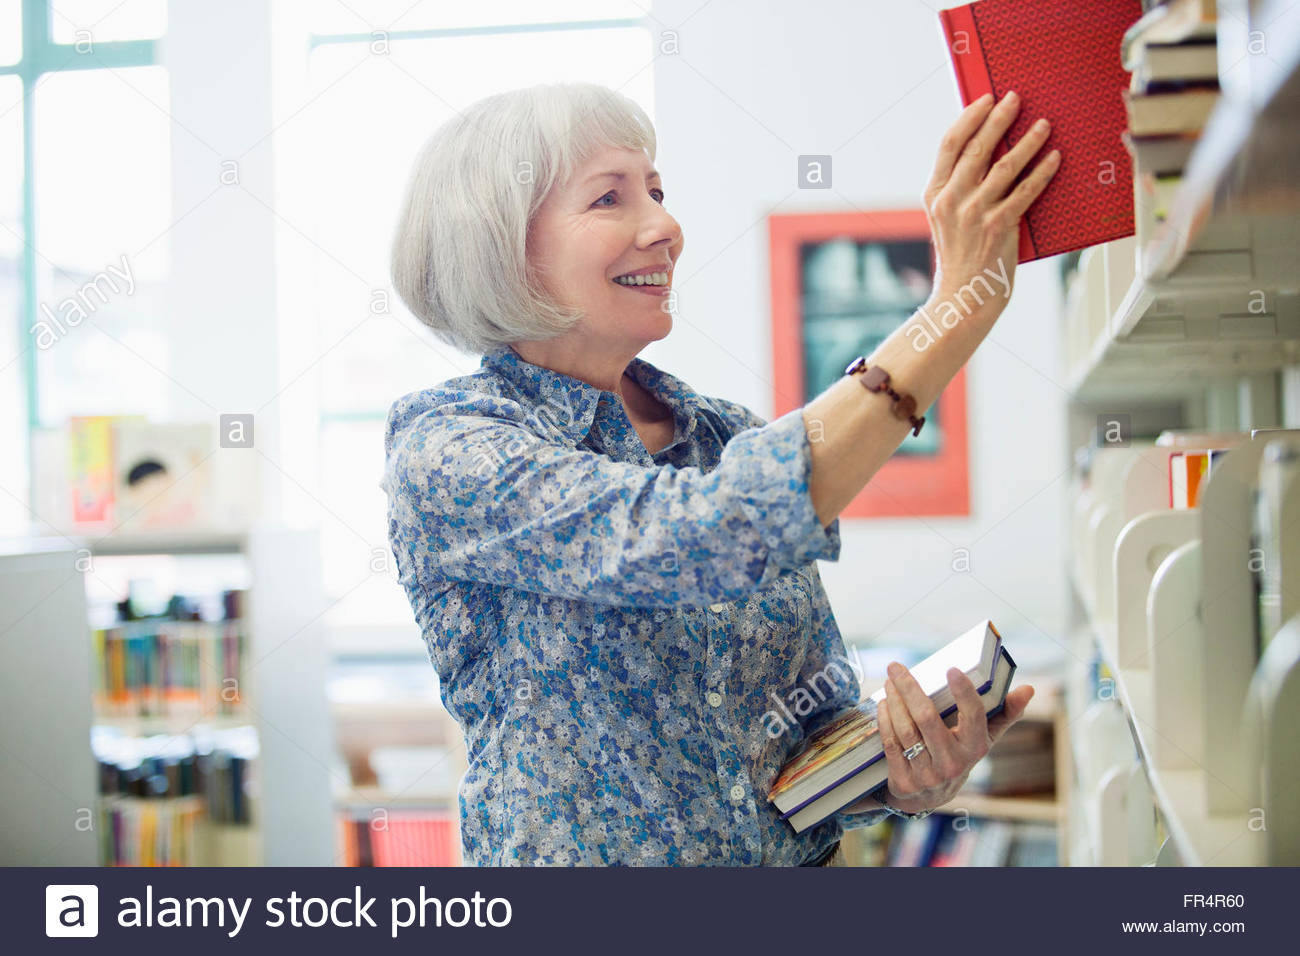 teacher returning books to shelf - Stock Image